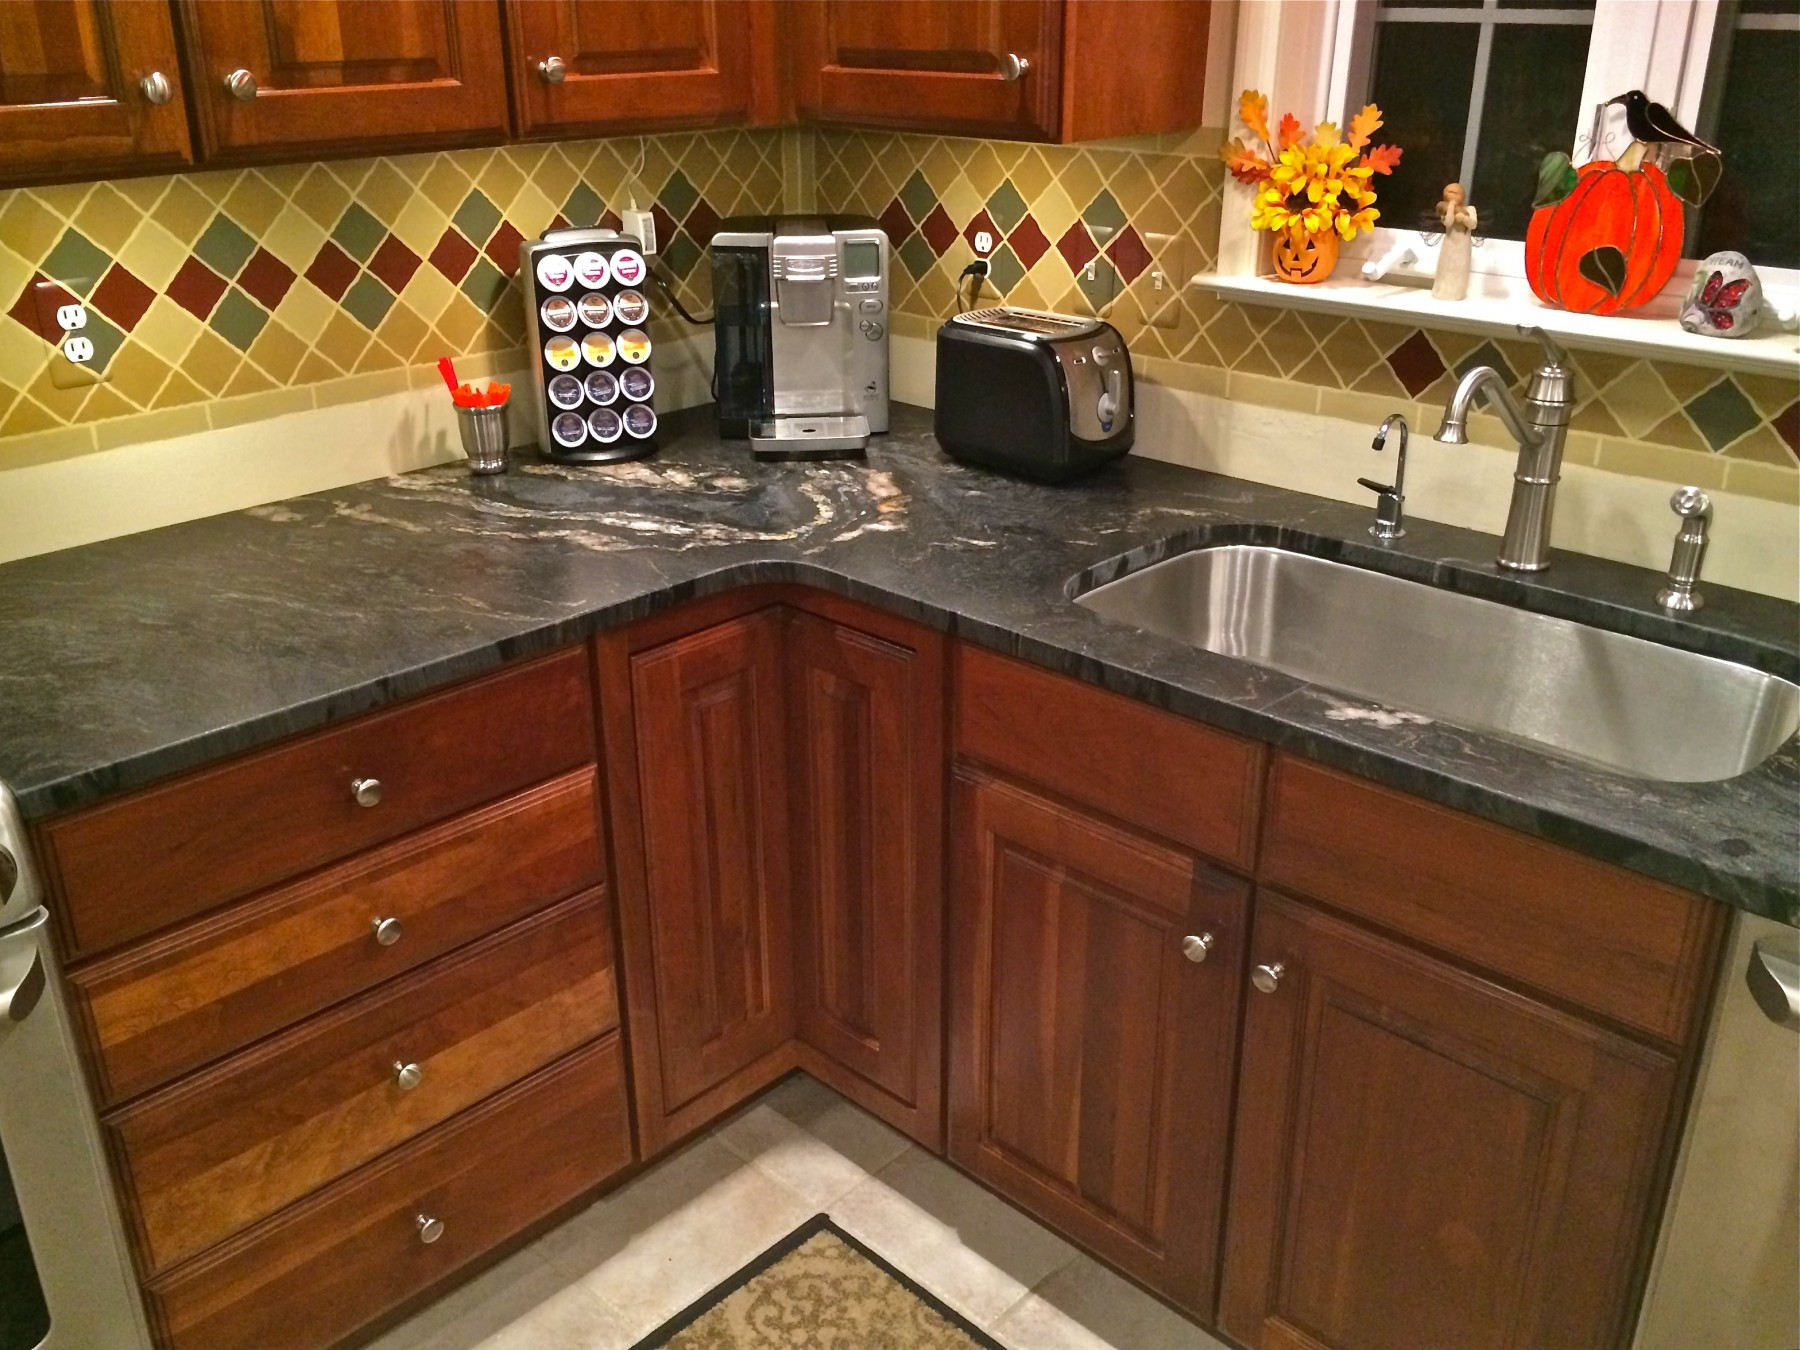 natural stone kitchens colonial kitchen sink Titanium Black Leathered w Eased Edge